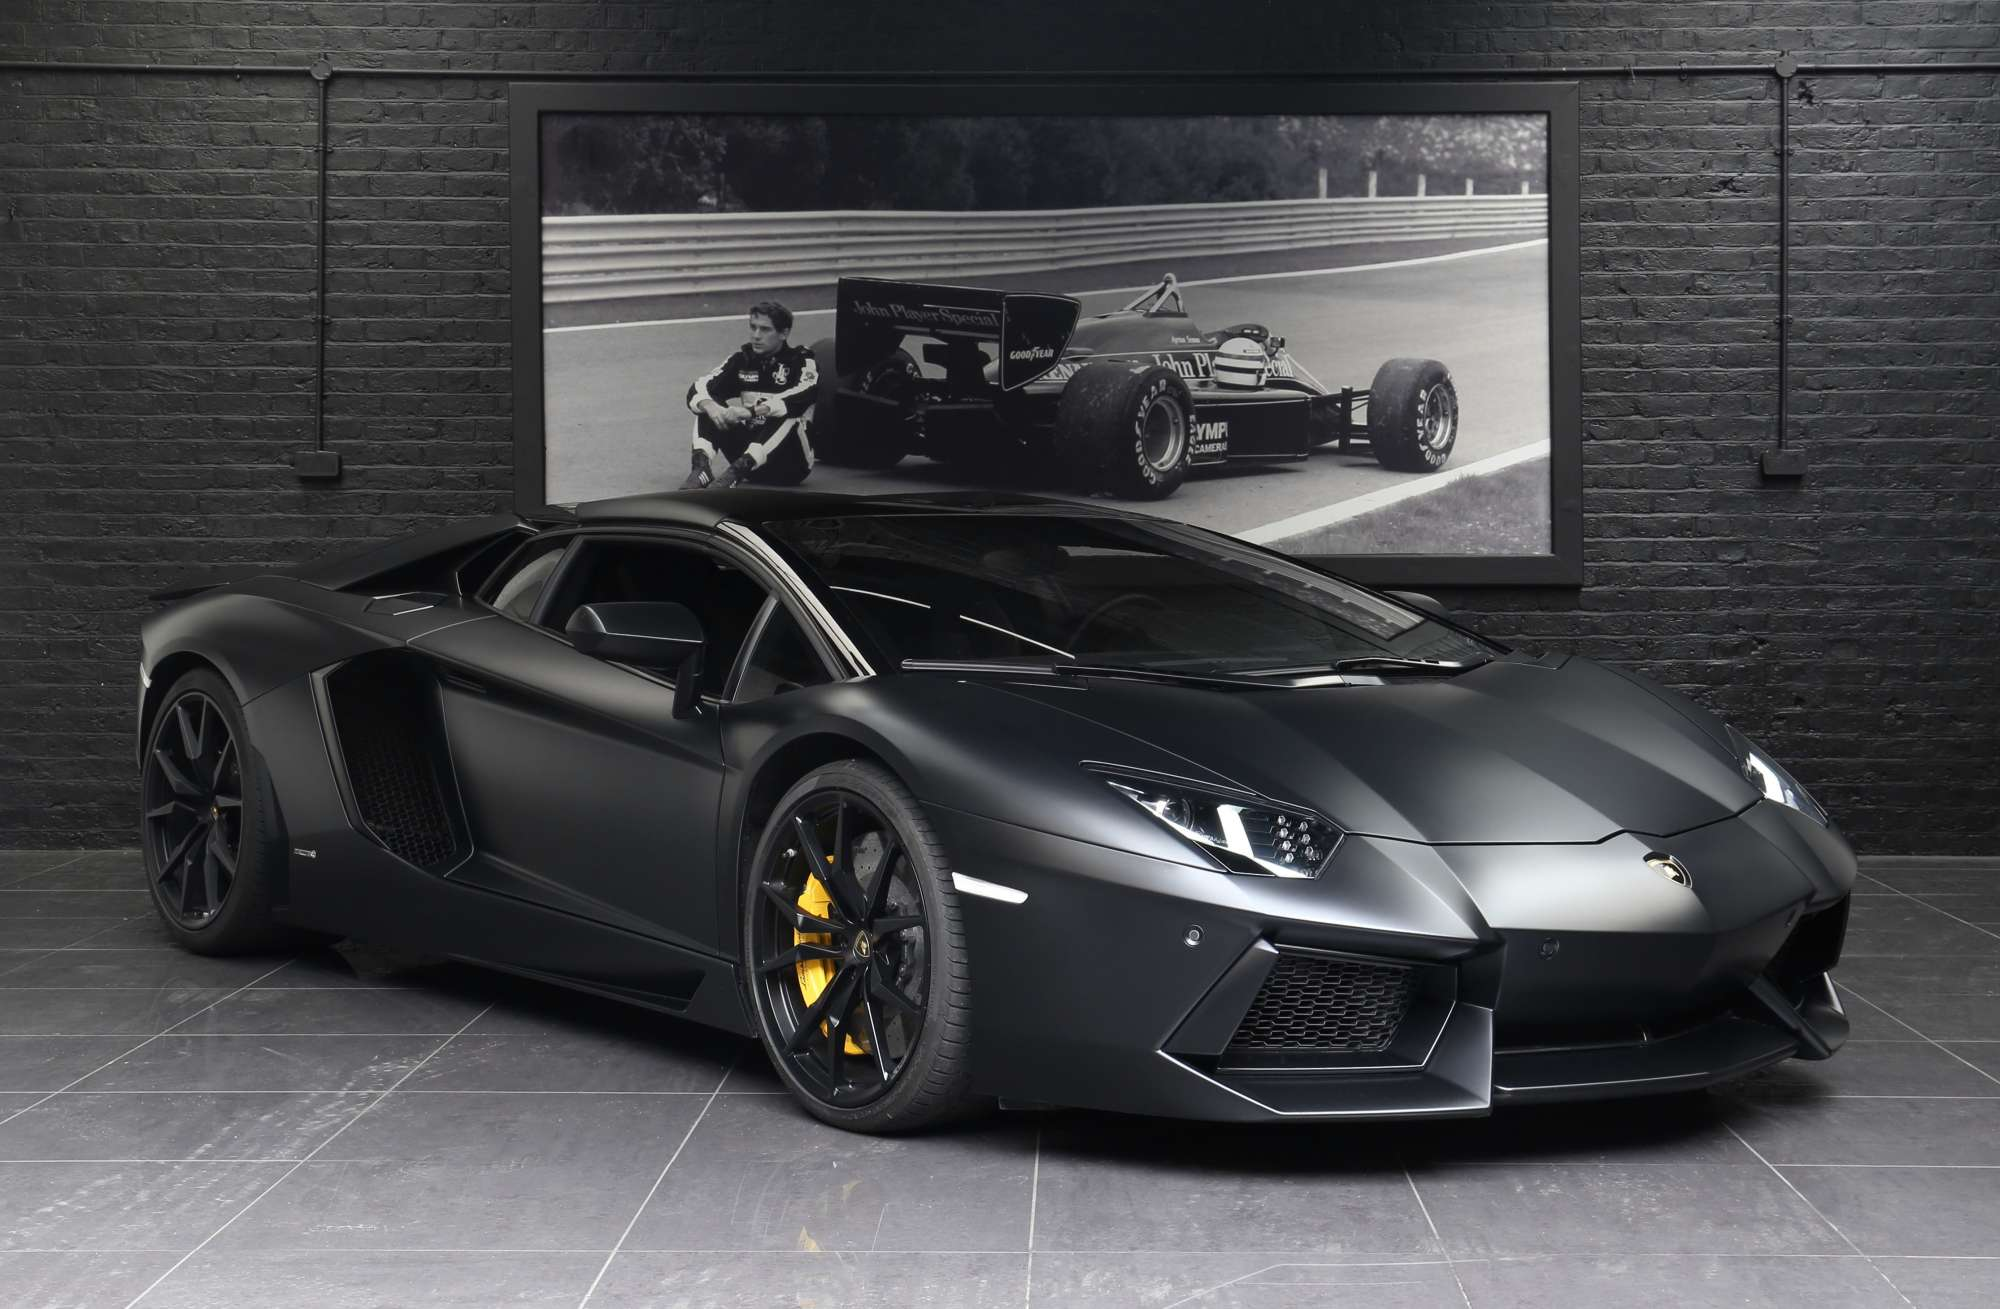 Program Car Garage Door Opener >> LHD LAMBORGHINI AVENTADOR ROADSTER - Pegasus Auto House